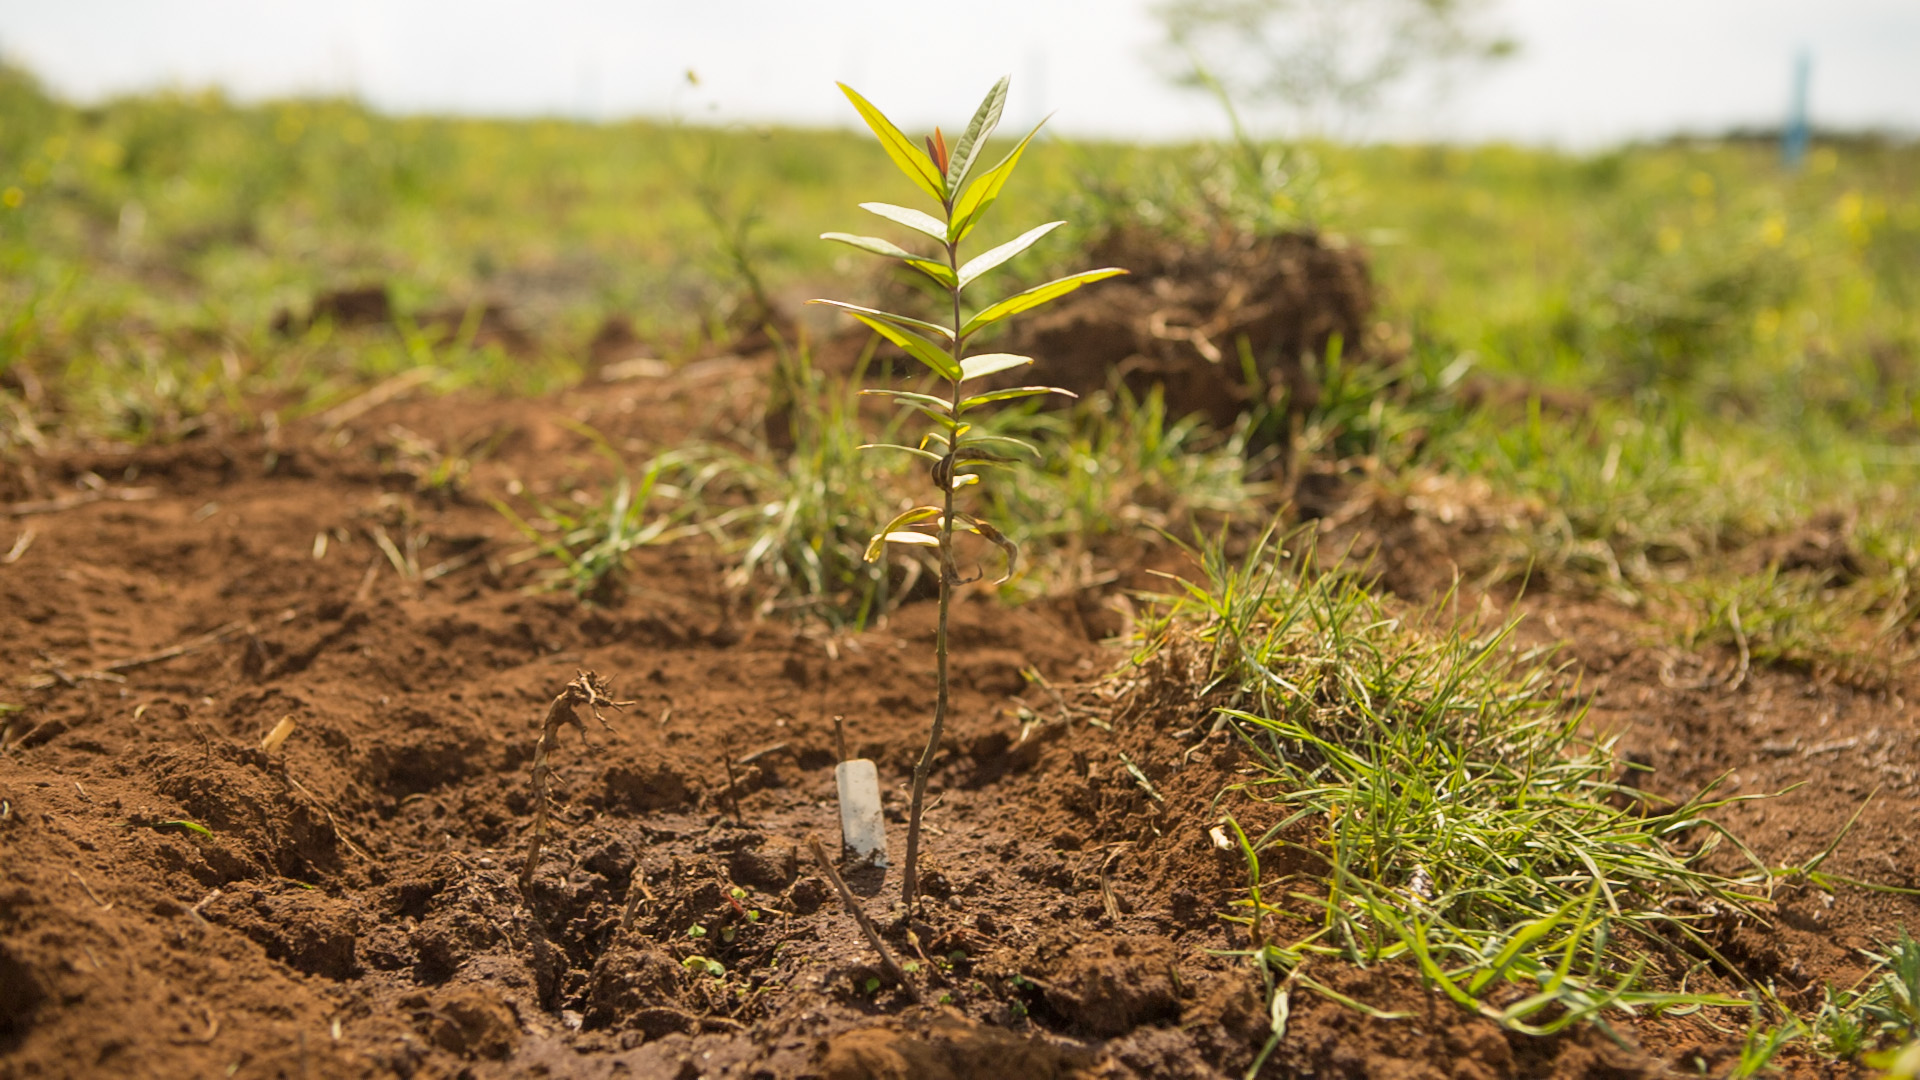 Sandalwood seedling